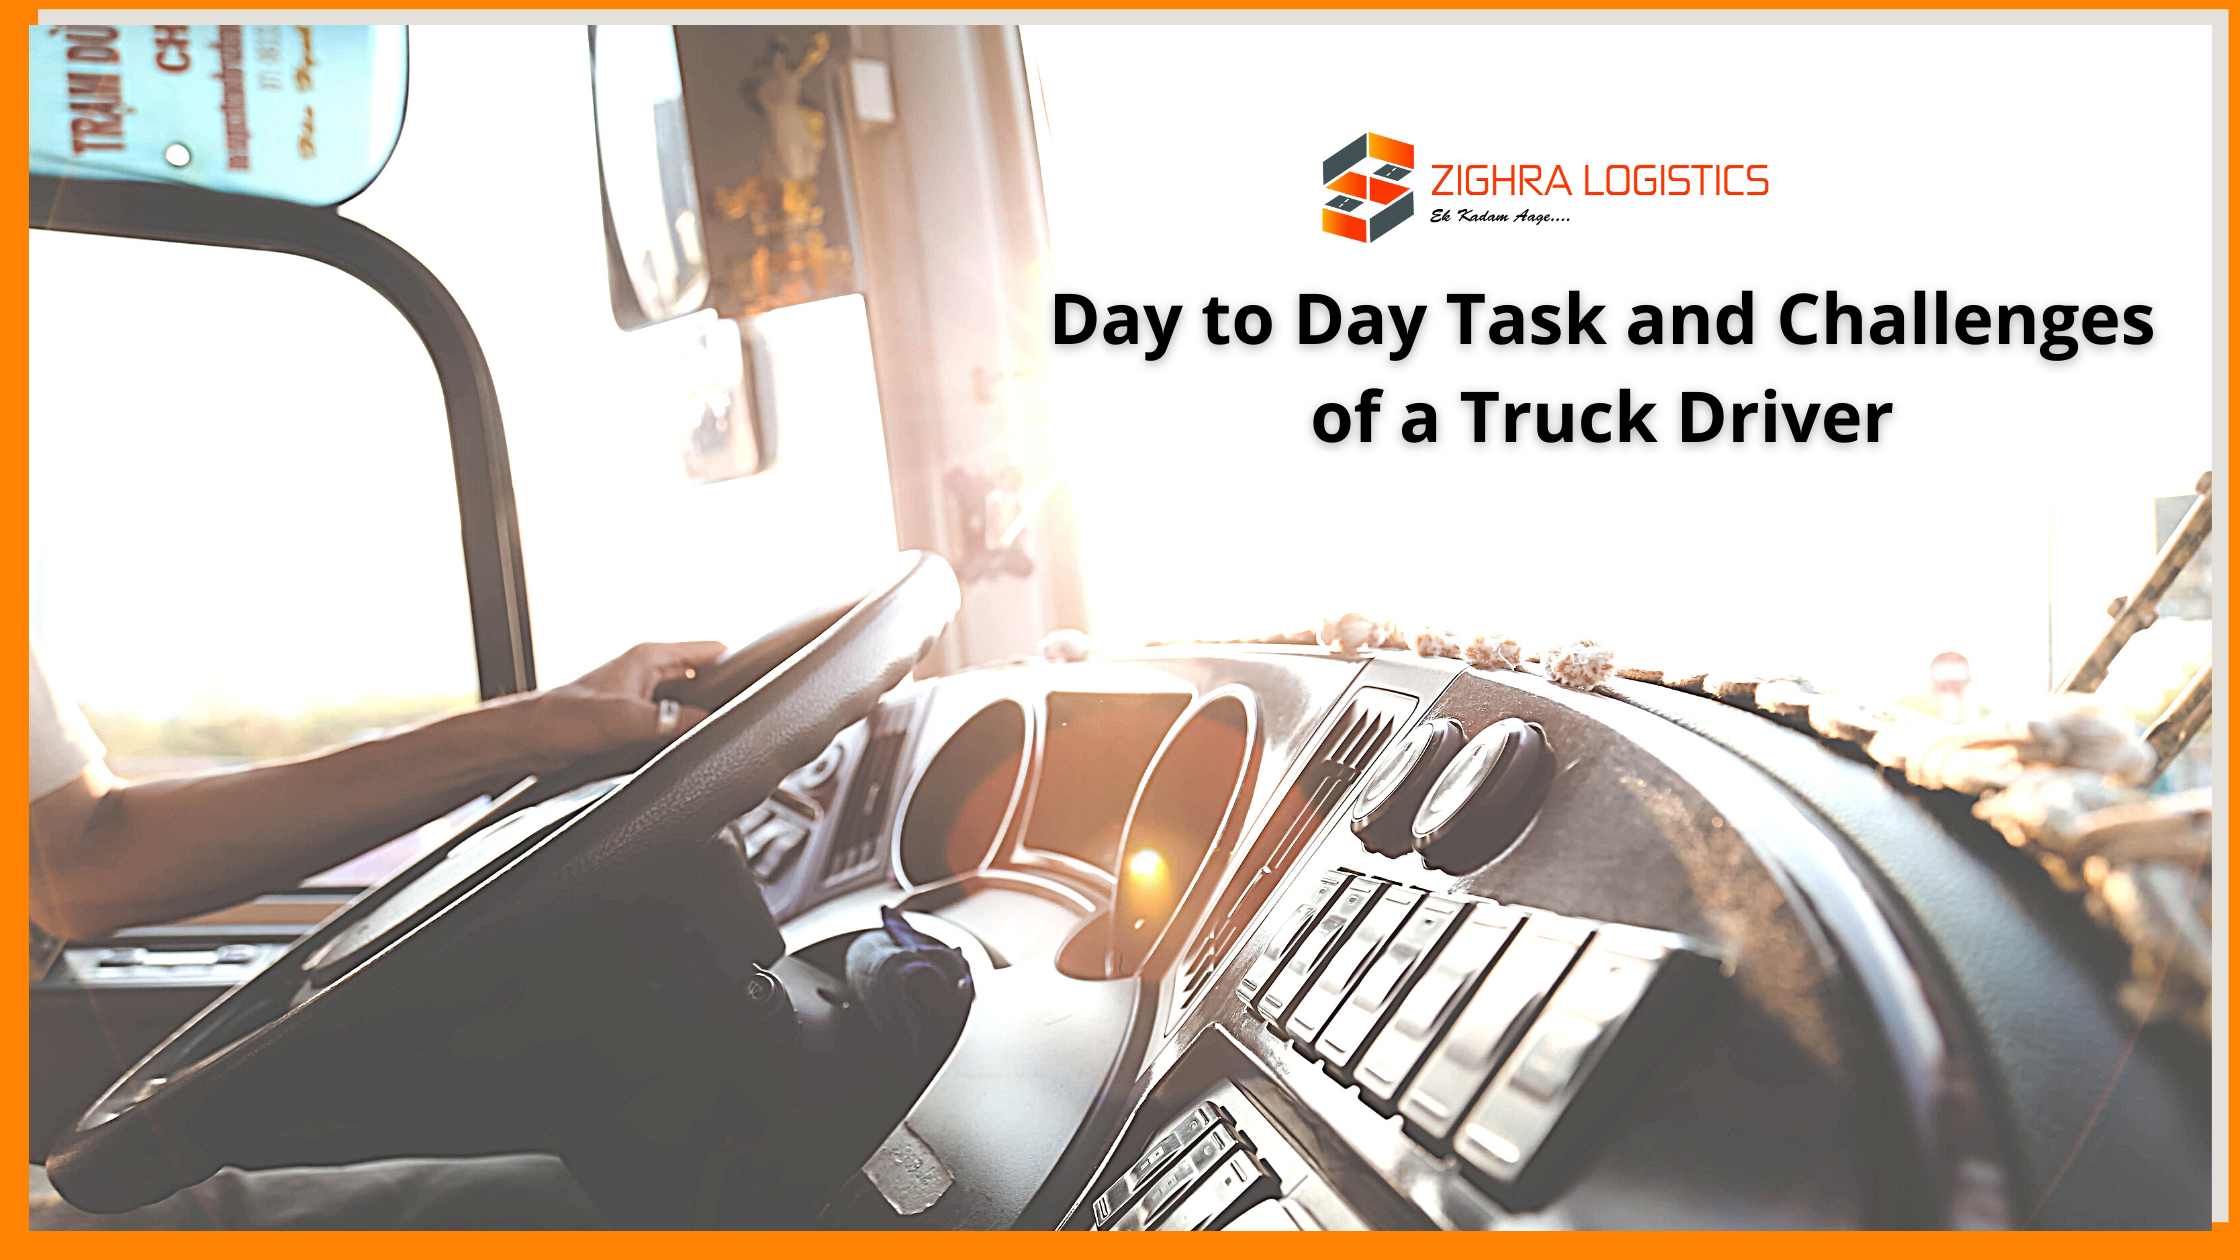 Day to day task and challenges of a truck driver